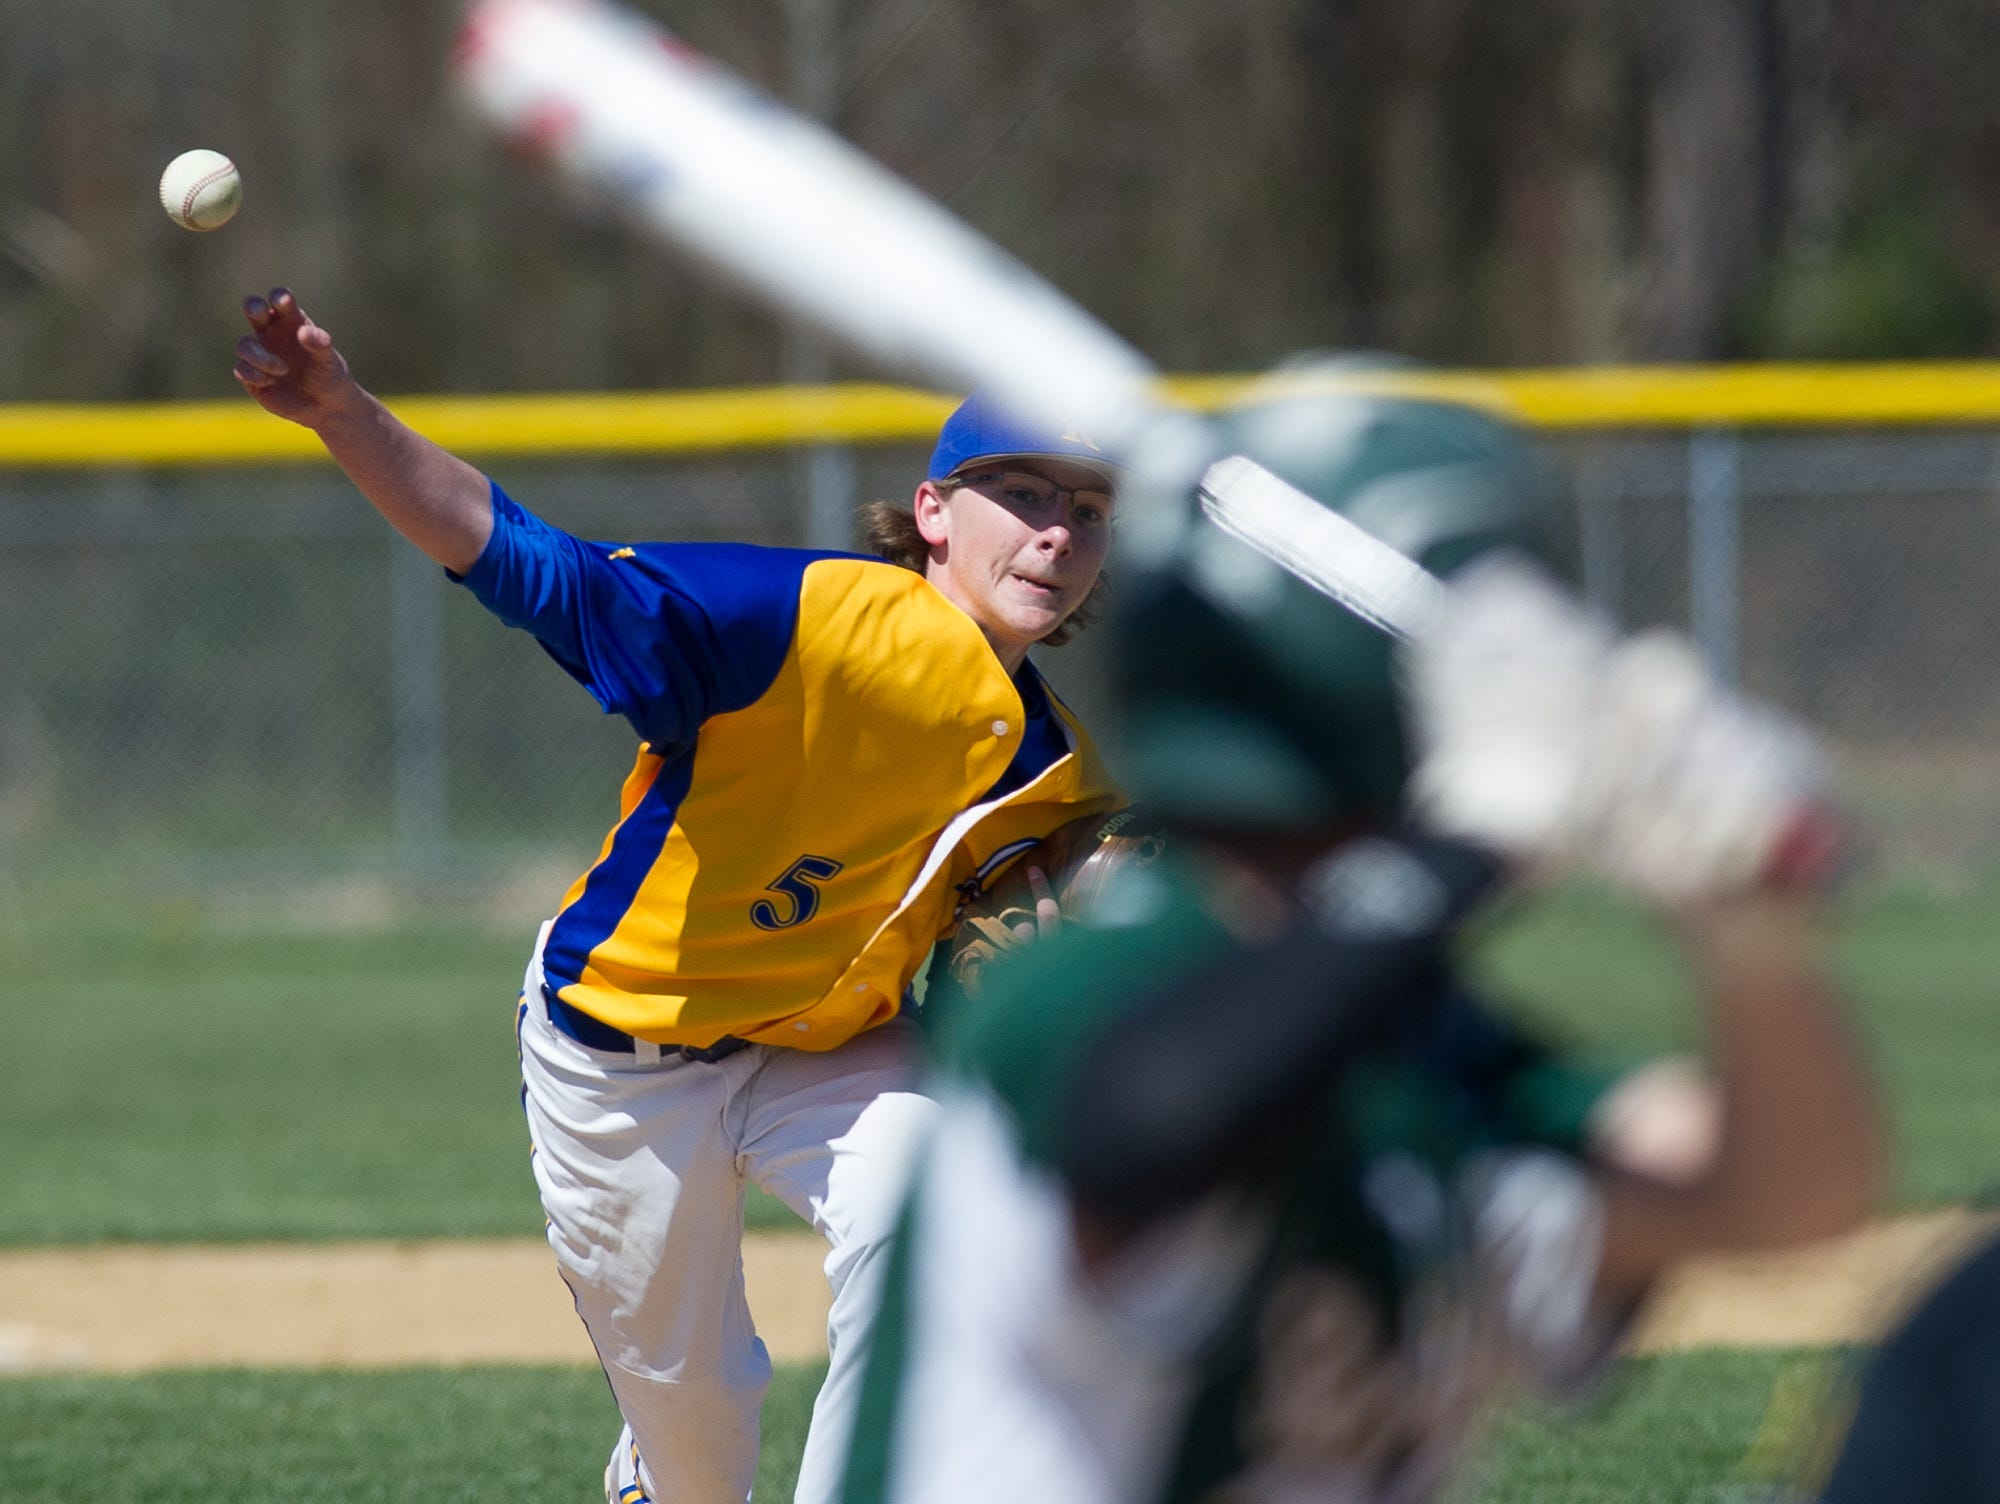 Caesar Rodney's pitcher Steven Platt (5) sends a pitch to the home plate in their game against St. Marks.